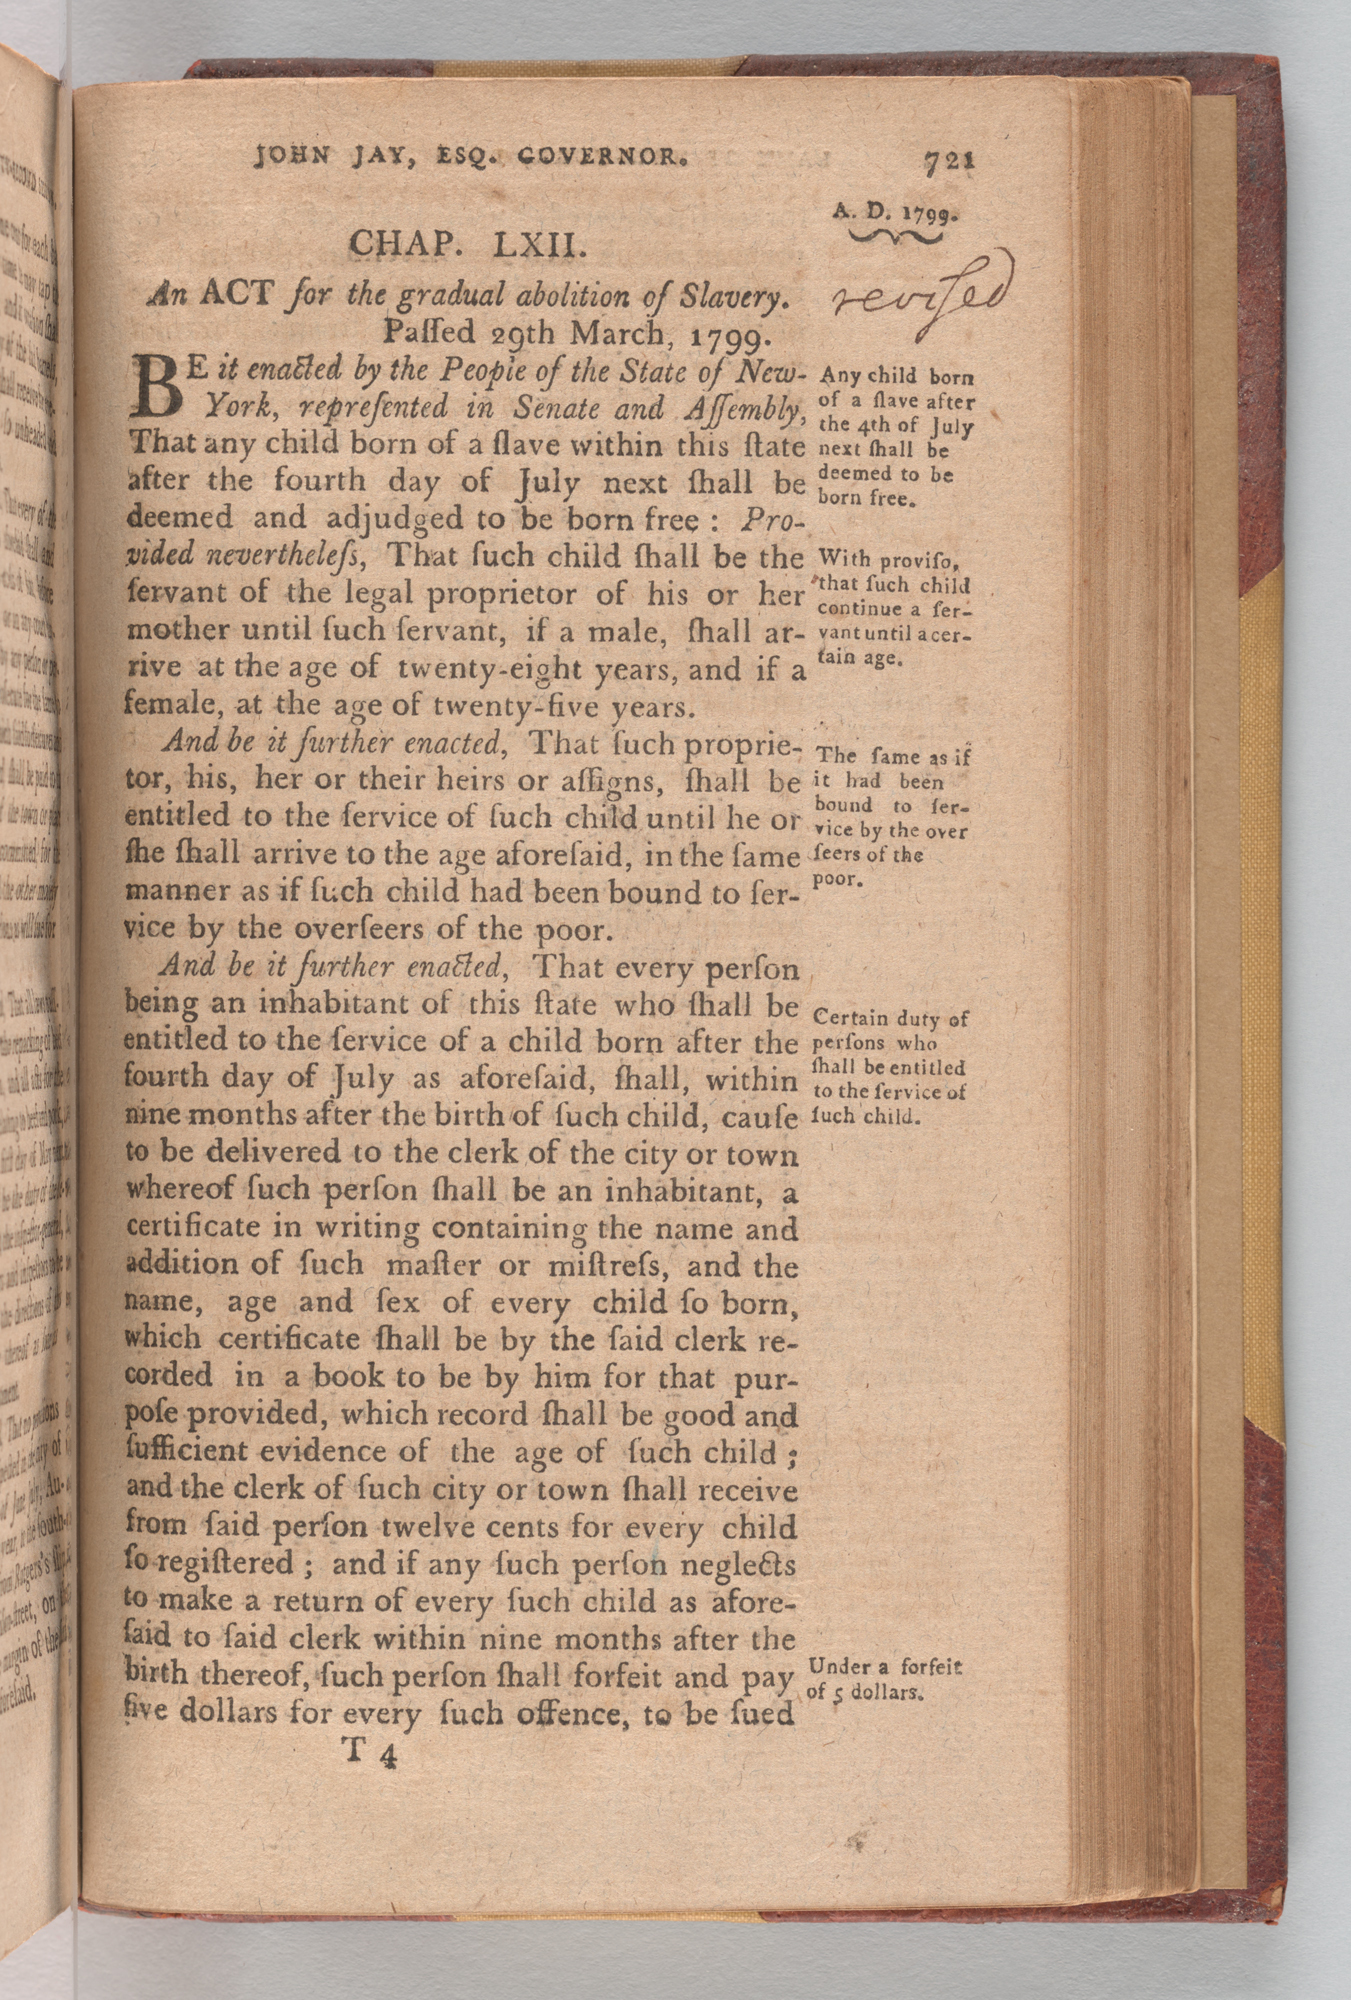 Laws of the State of New-York. Passed at the Twenty-Second Session, Second Meeting, of the Legislature, begun and held at the City of Albany, the Second Day of January 1799, page 721